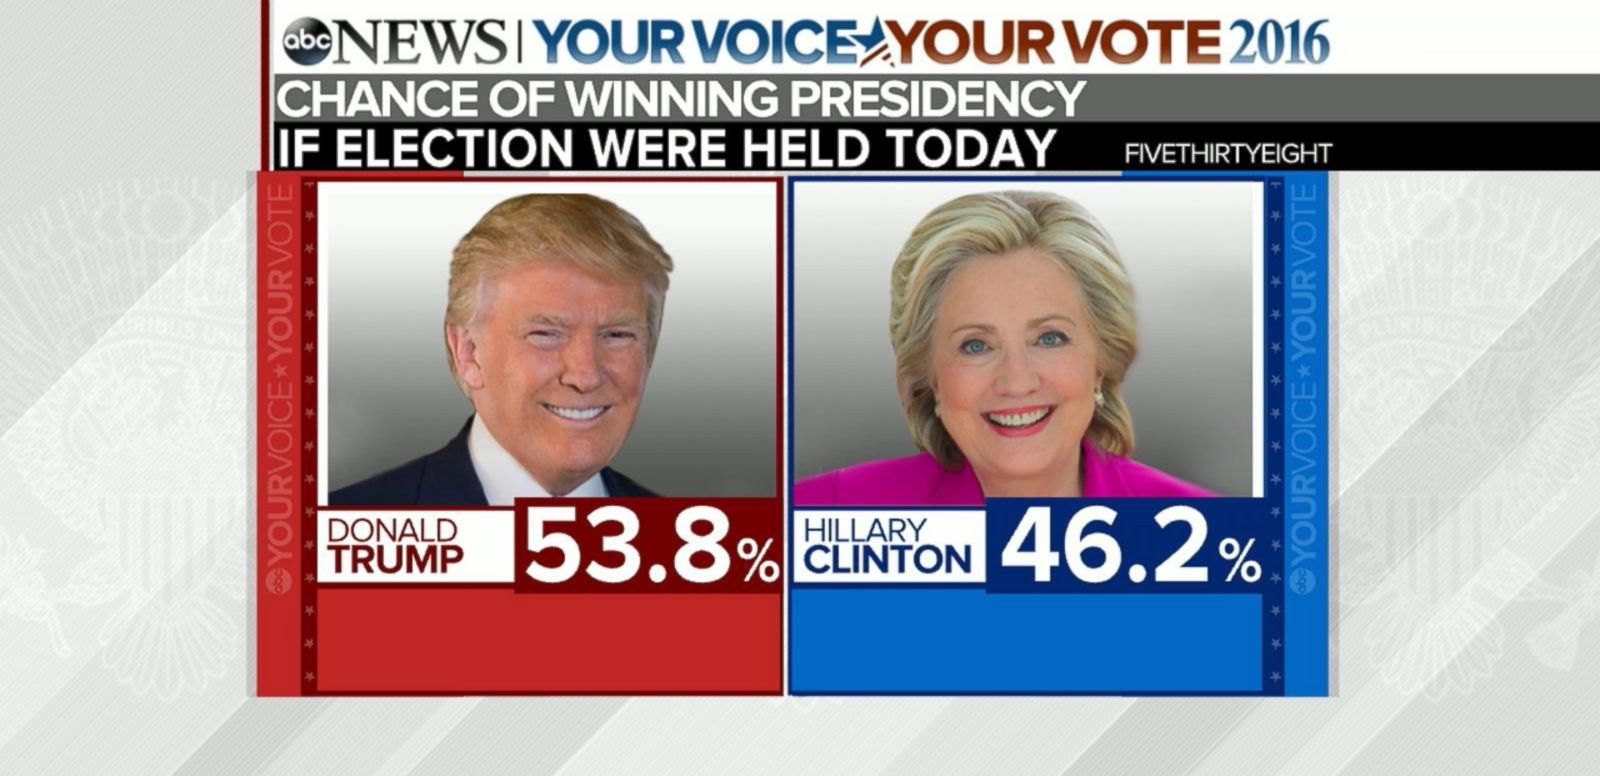 VIDEO: Polls Show Post-Convention Bounce for Donald Trump